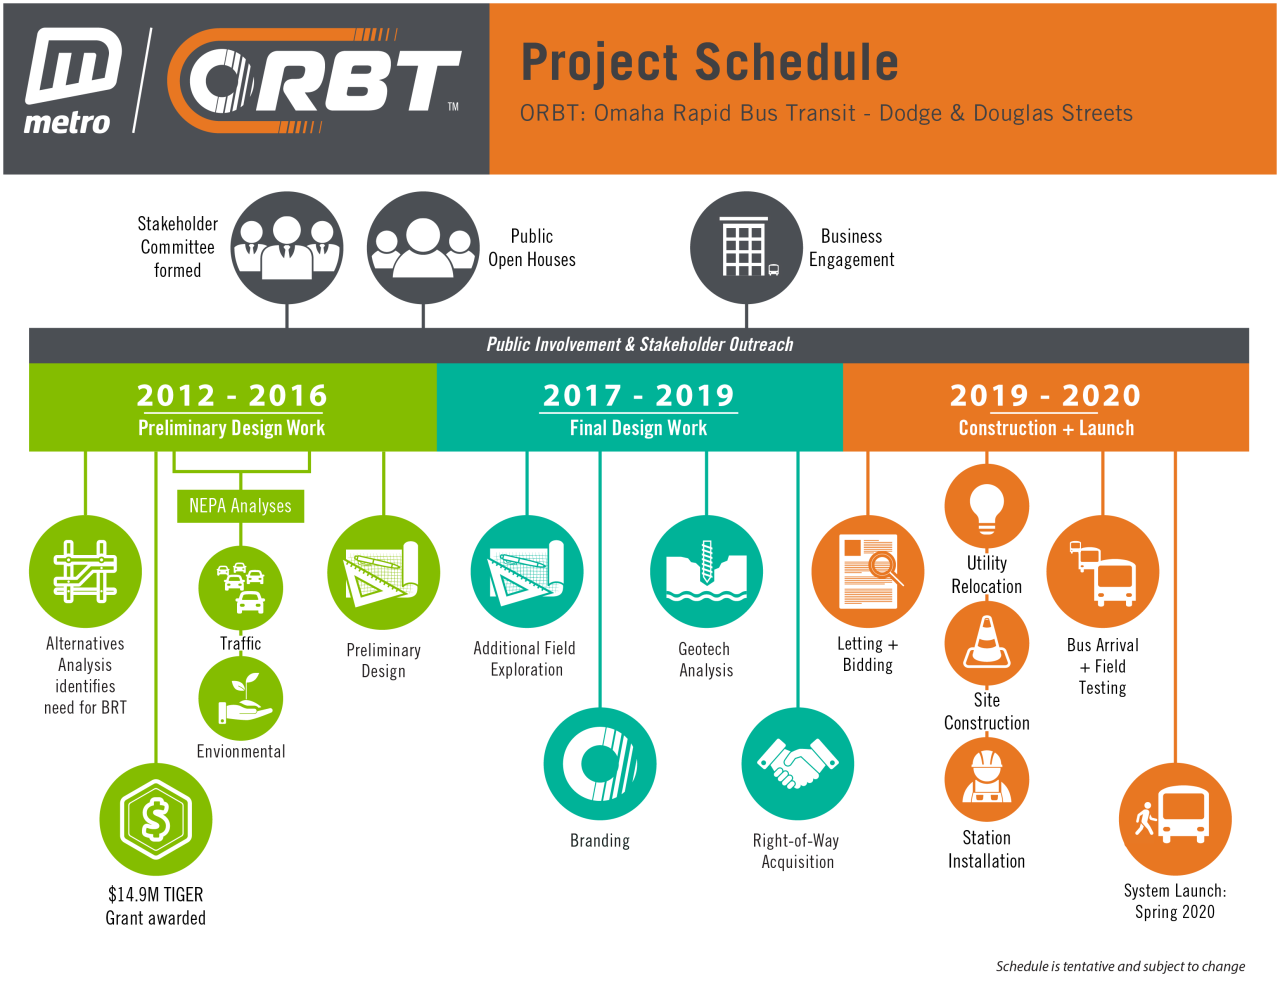 orbt project schedule.png